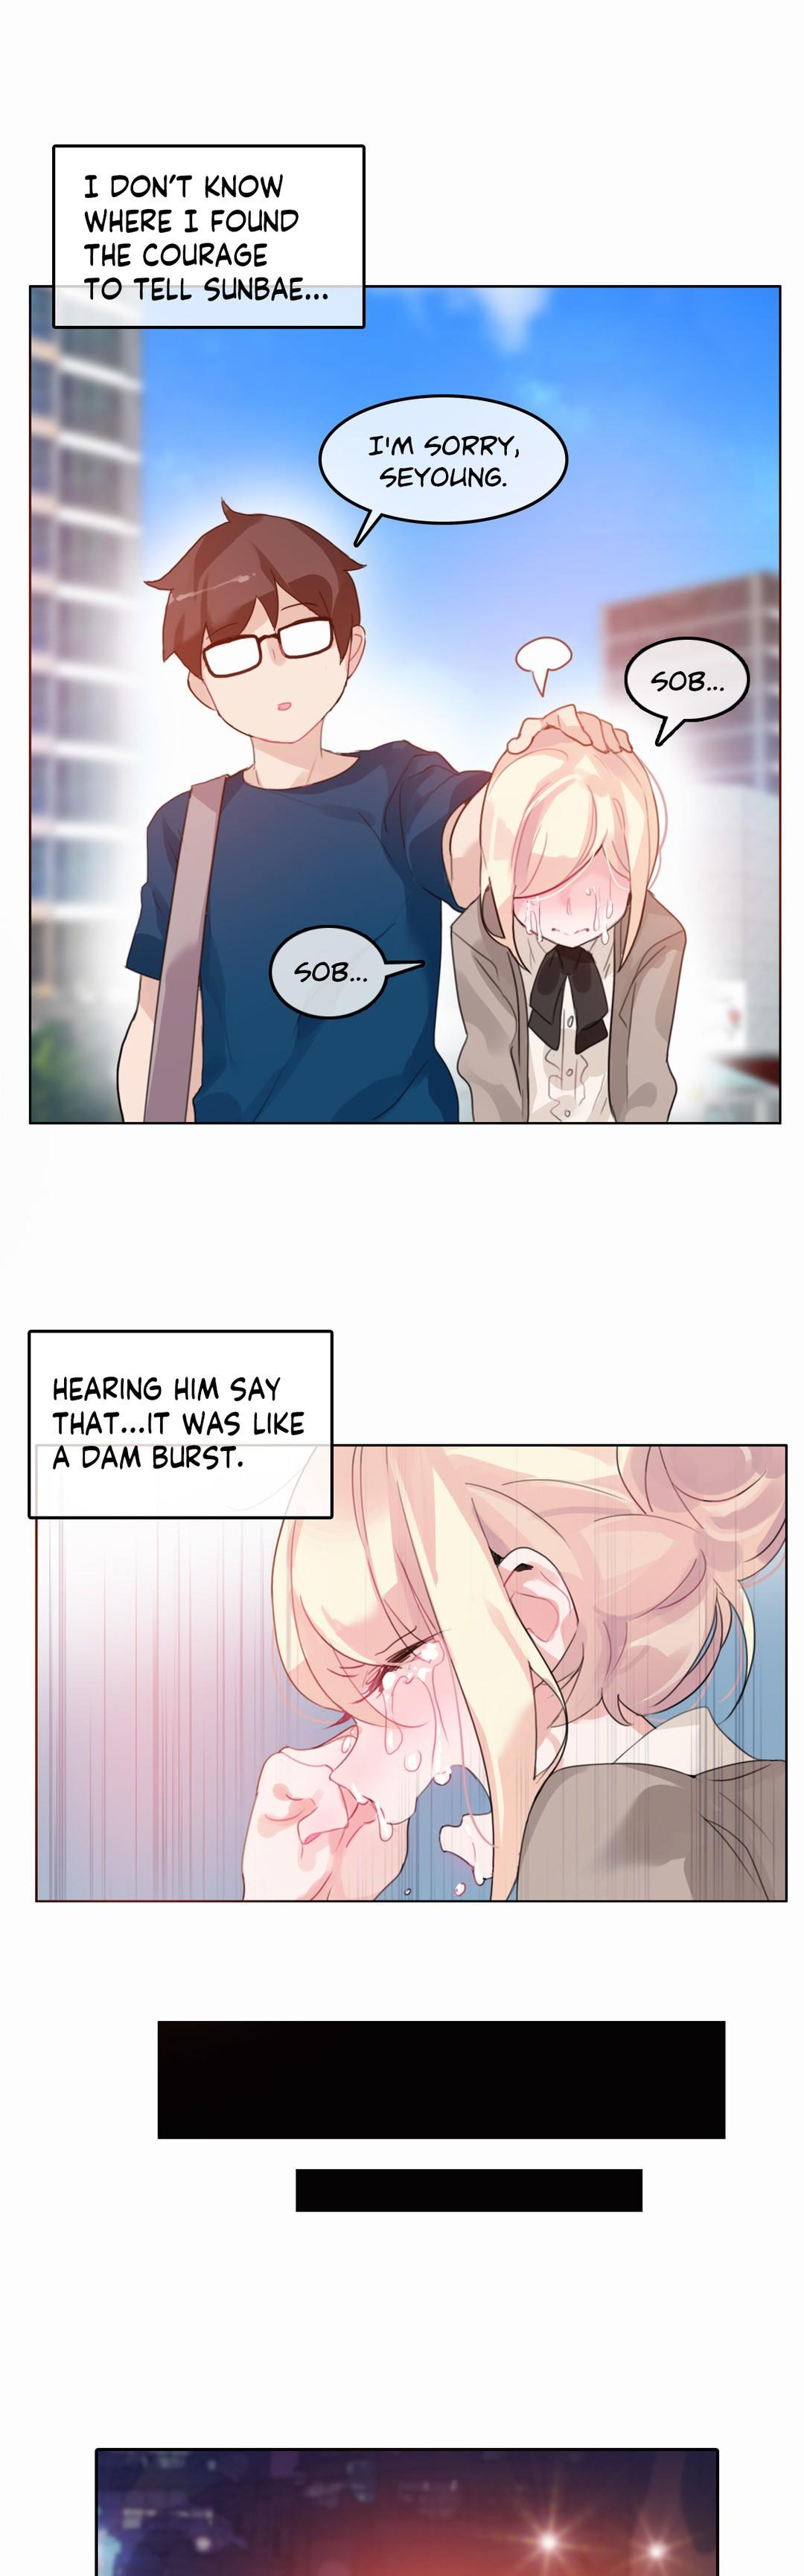 A Pervert's Daily Life Ch. 1-34 436